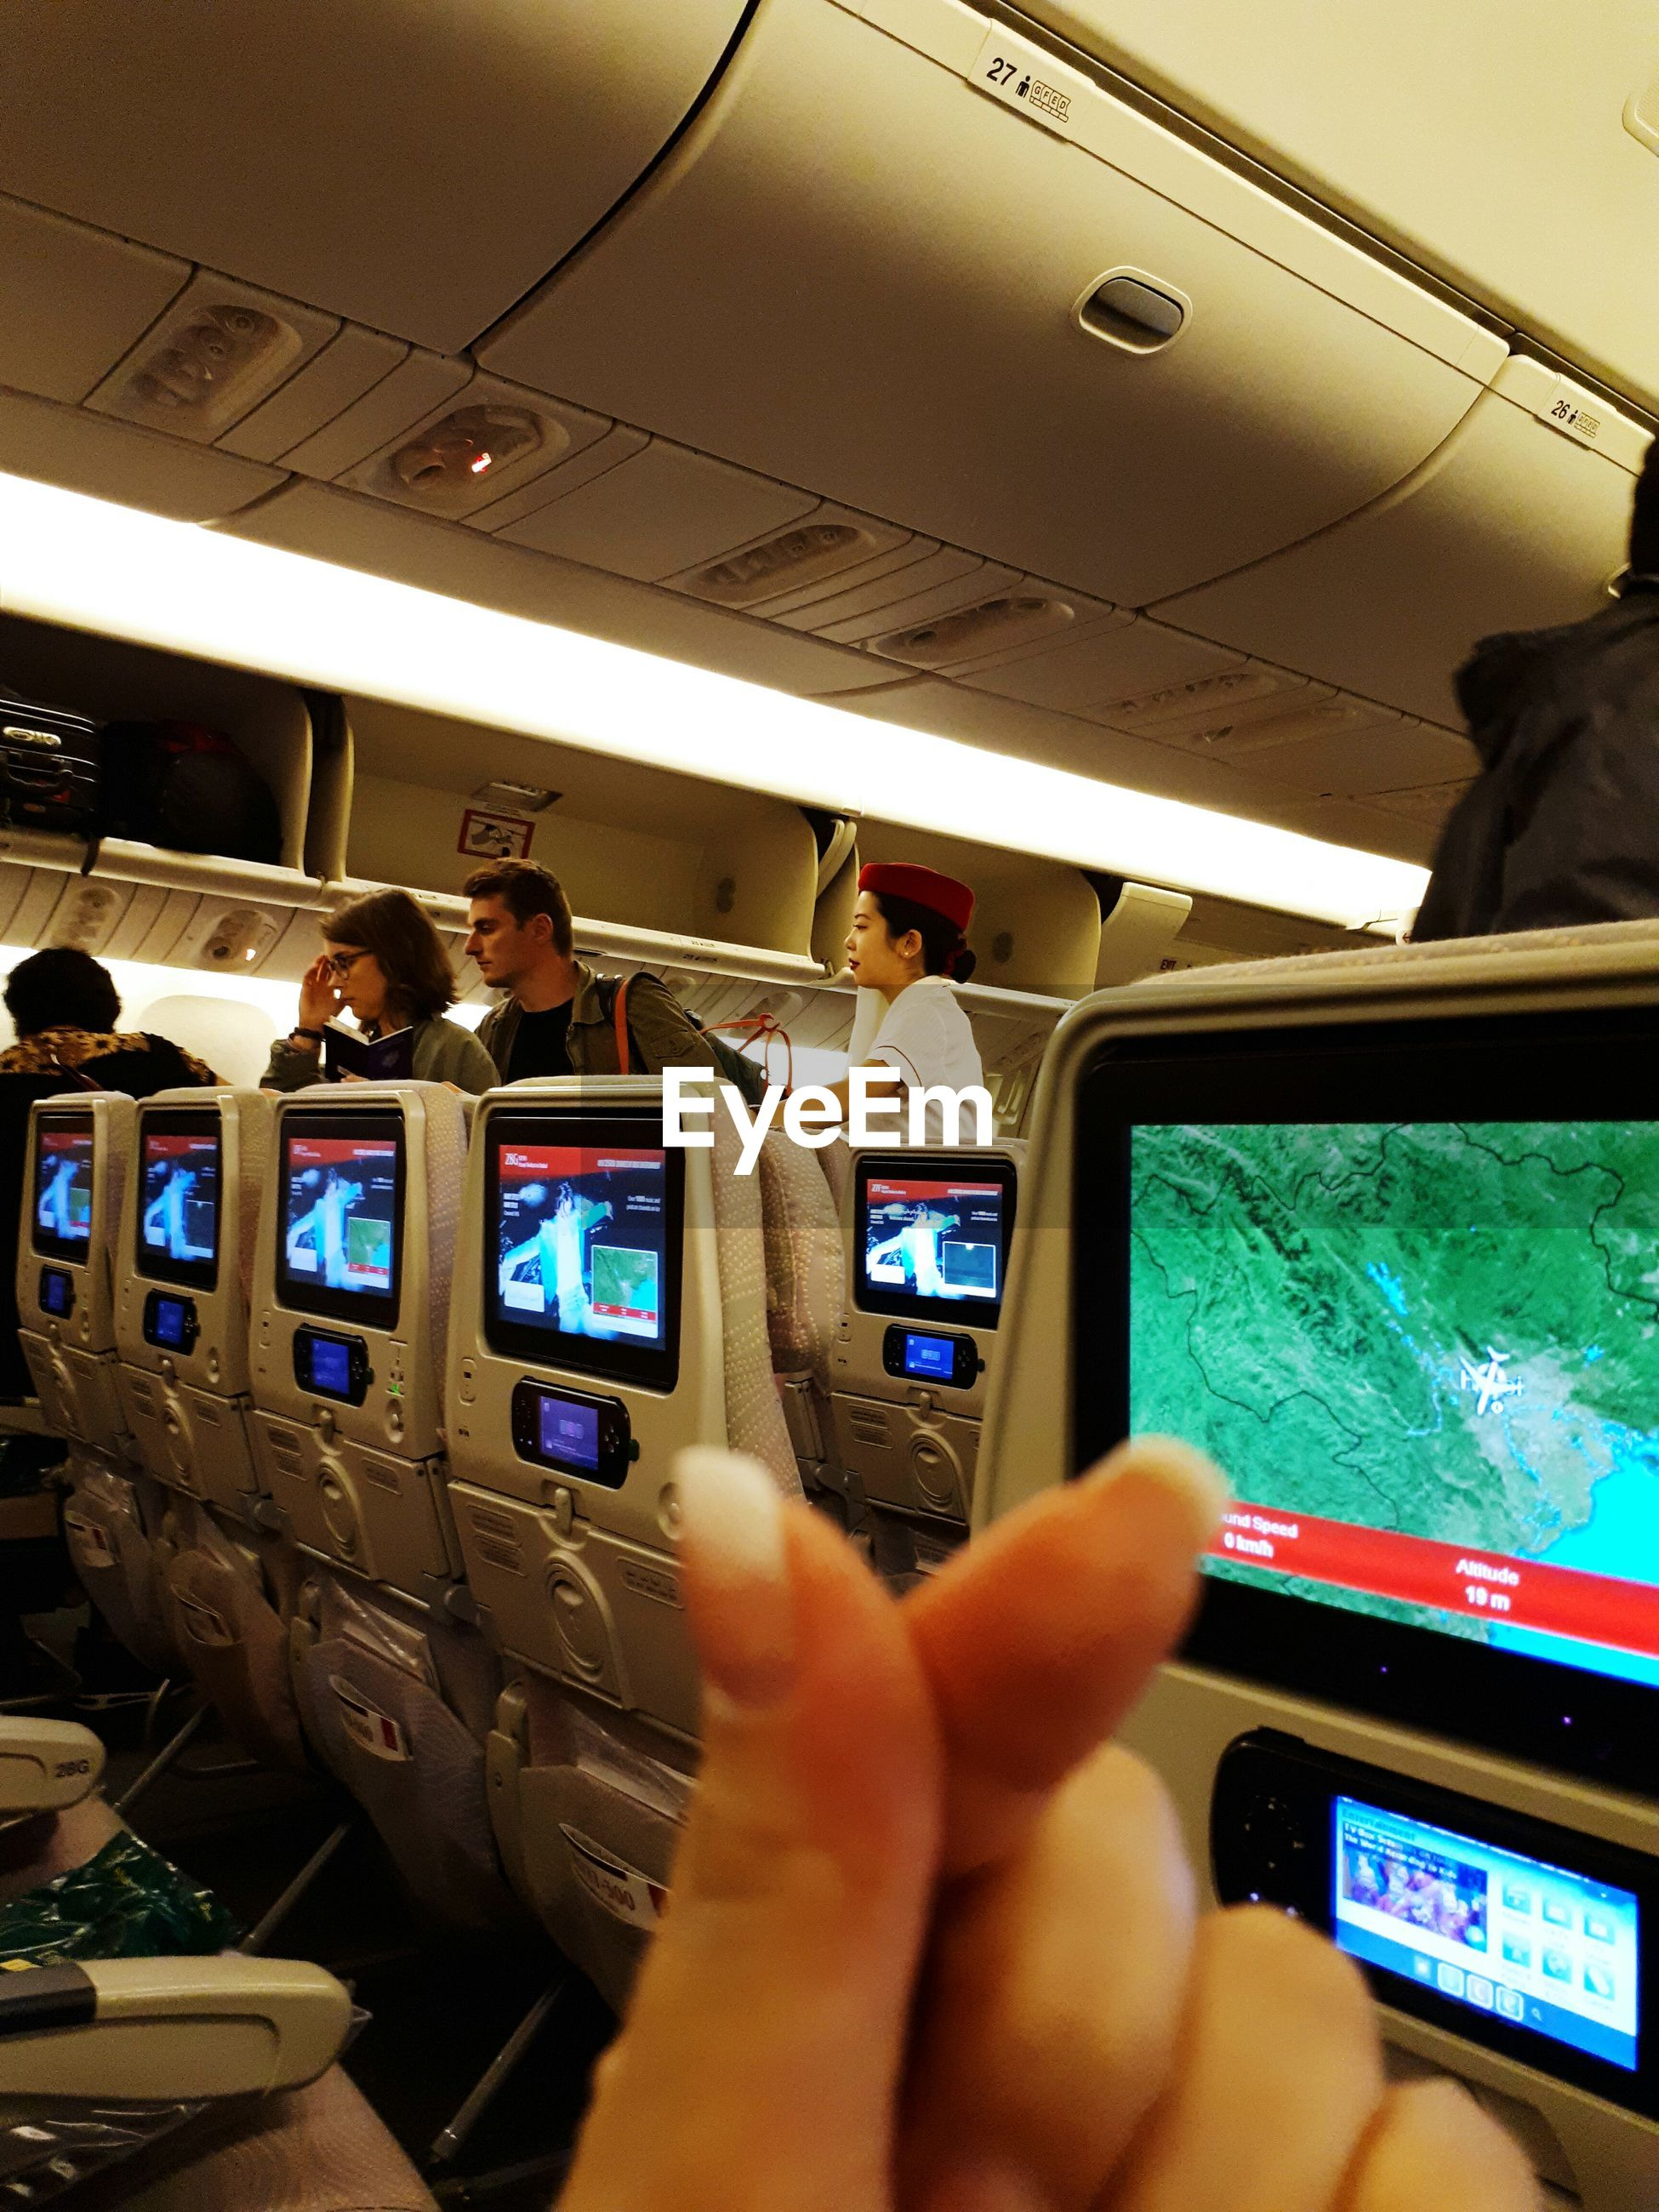 vehicle interior, technology, transportation, real people, device screen, mode of transport, computer, wireless technology, human hand, airplane, air vehicle, liquid-crystal display, illuminated, indoors, day, one person, people